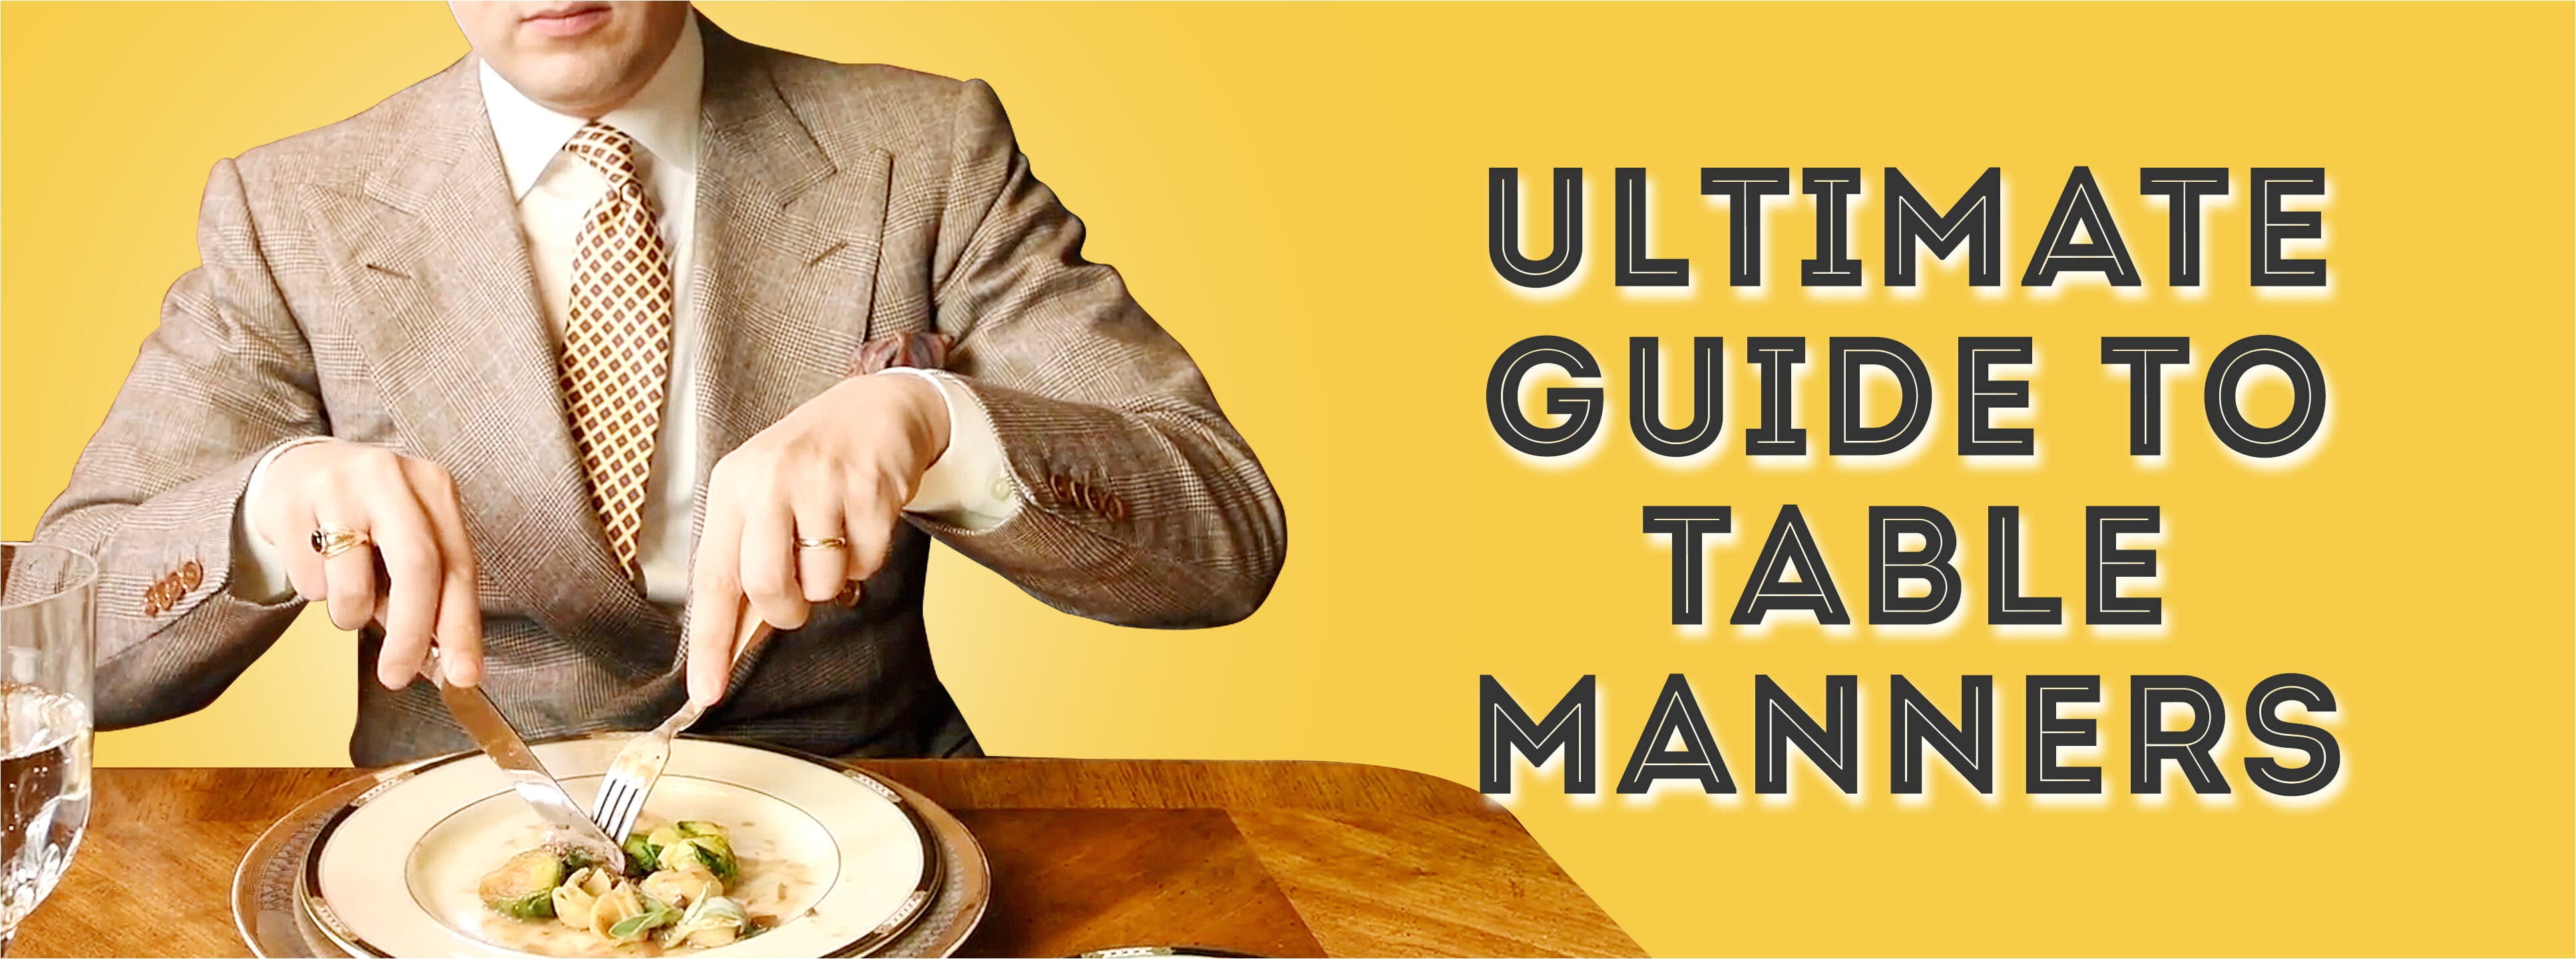 Best Chinese Delivery In Fargo Nd Table Manners Ultimate Guide to Dining Etiquette Gentleman S Gazette